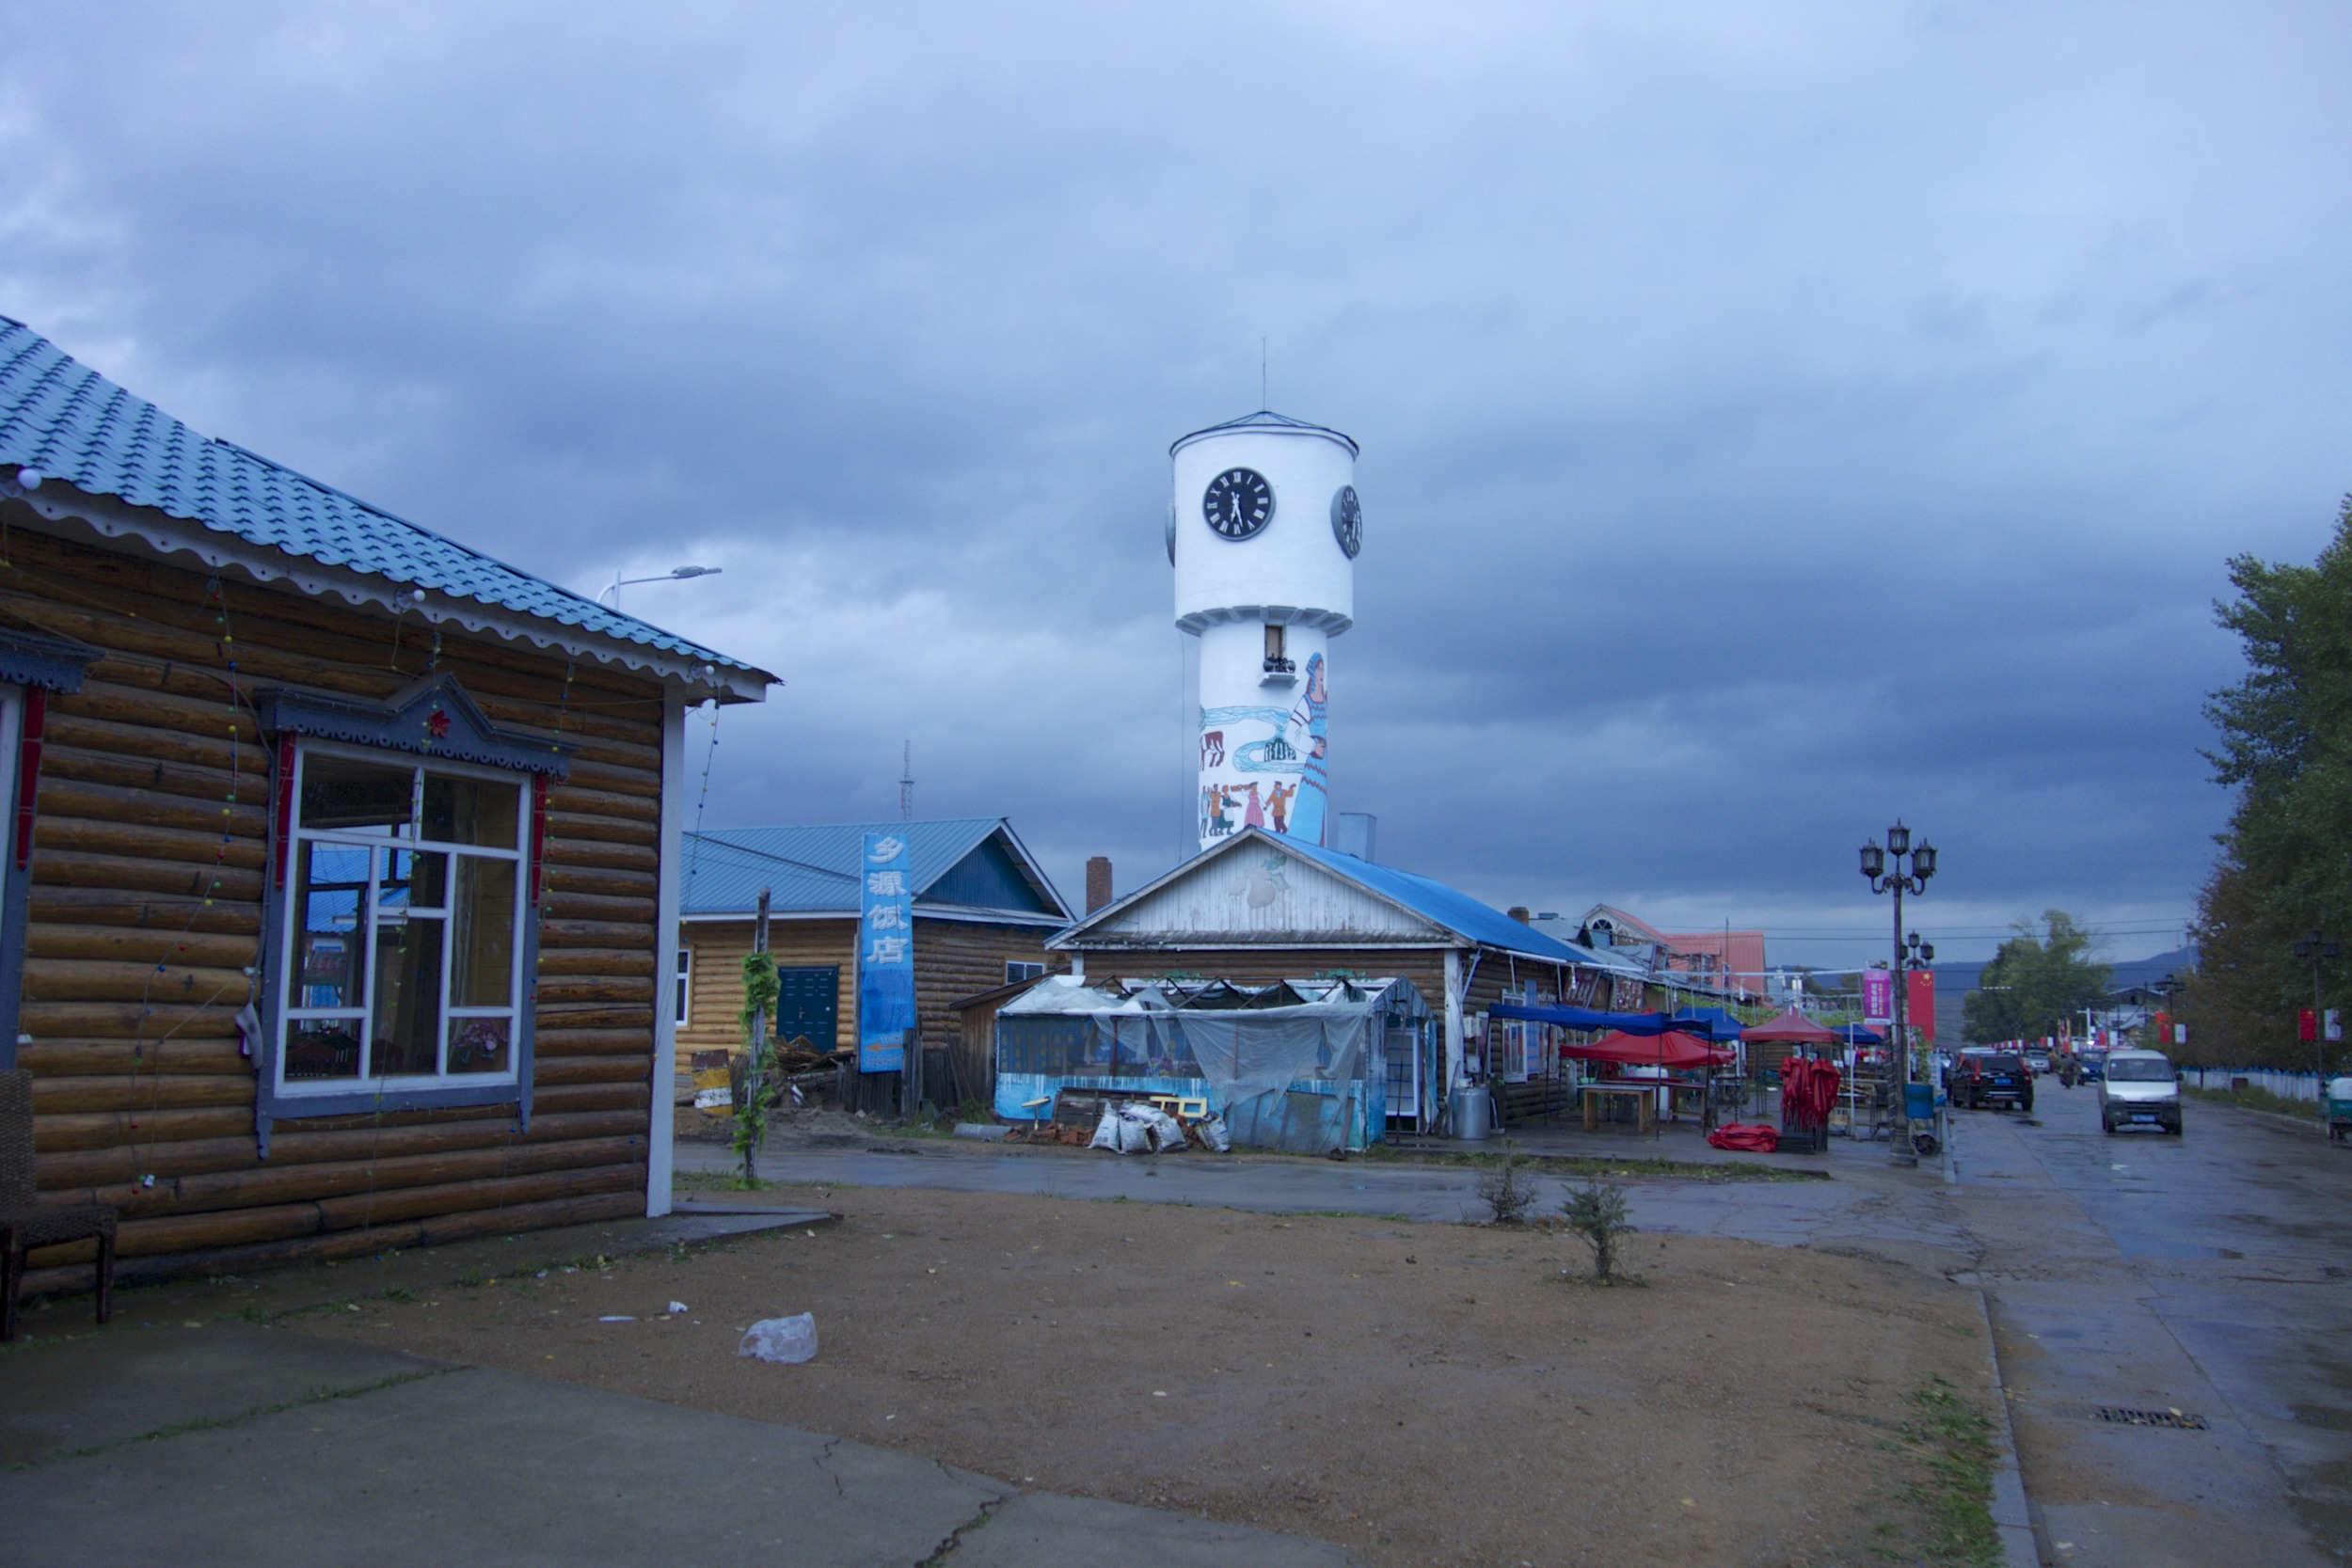 Shiwei centre - A Chinese border city to Russia